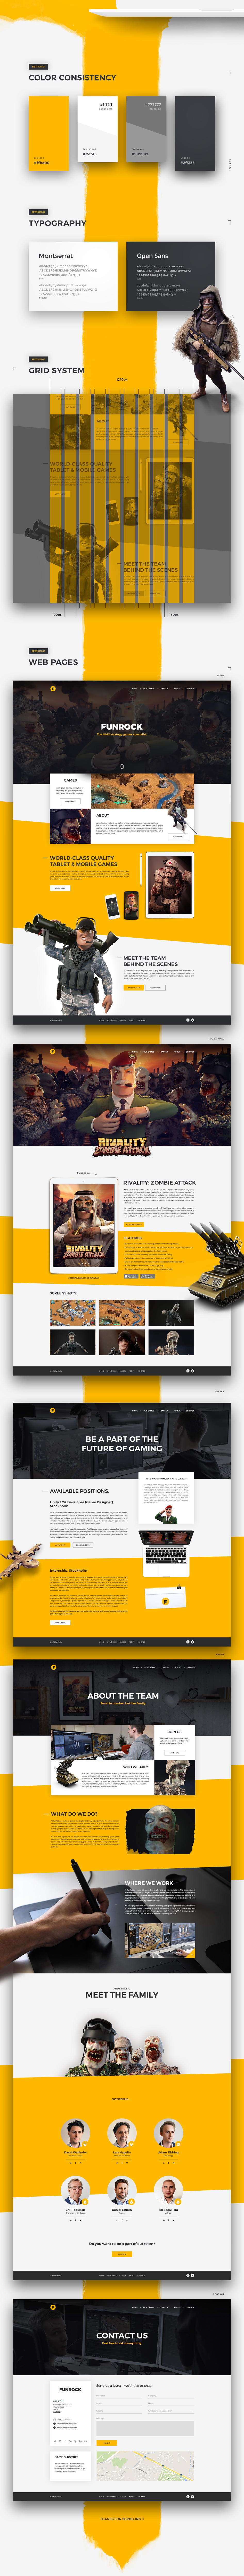 redesign ux UI White yellow gray design Gaming funrock Entertainment interaction